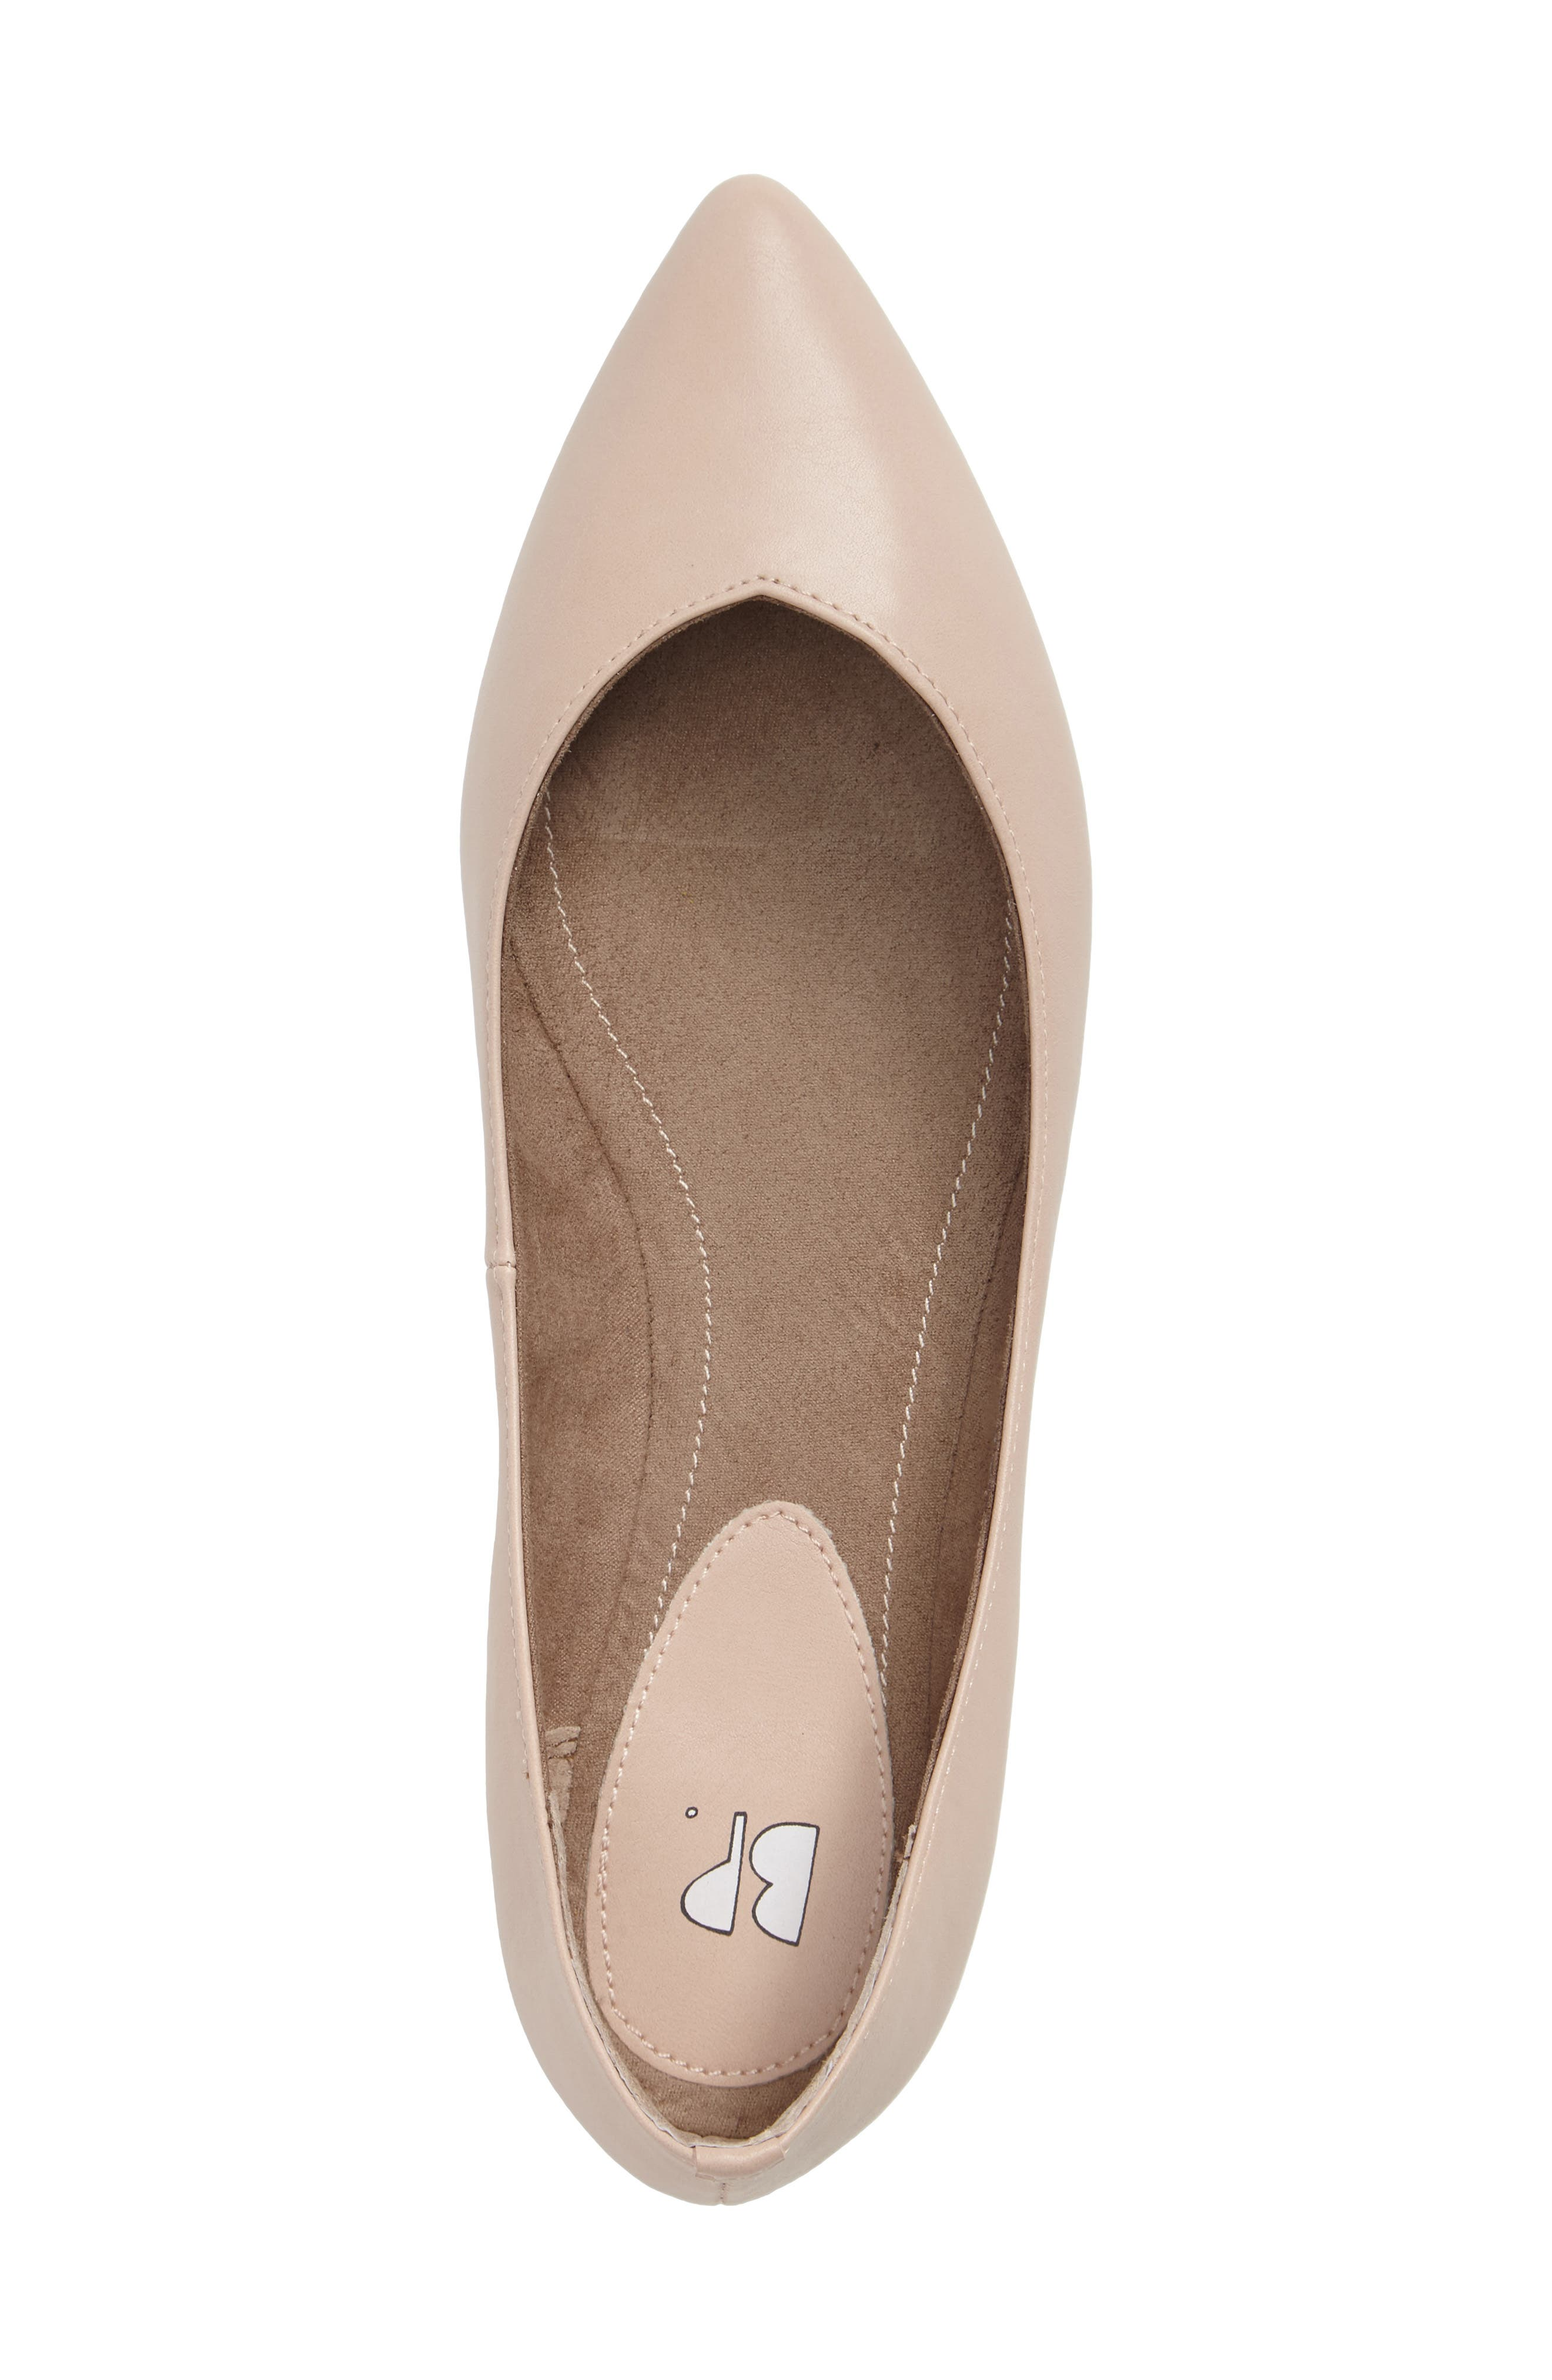 'Moveover' Pointy Toe Flat,                             Alternate thumbnail 3, color,                             Blush Faux Leather